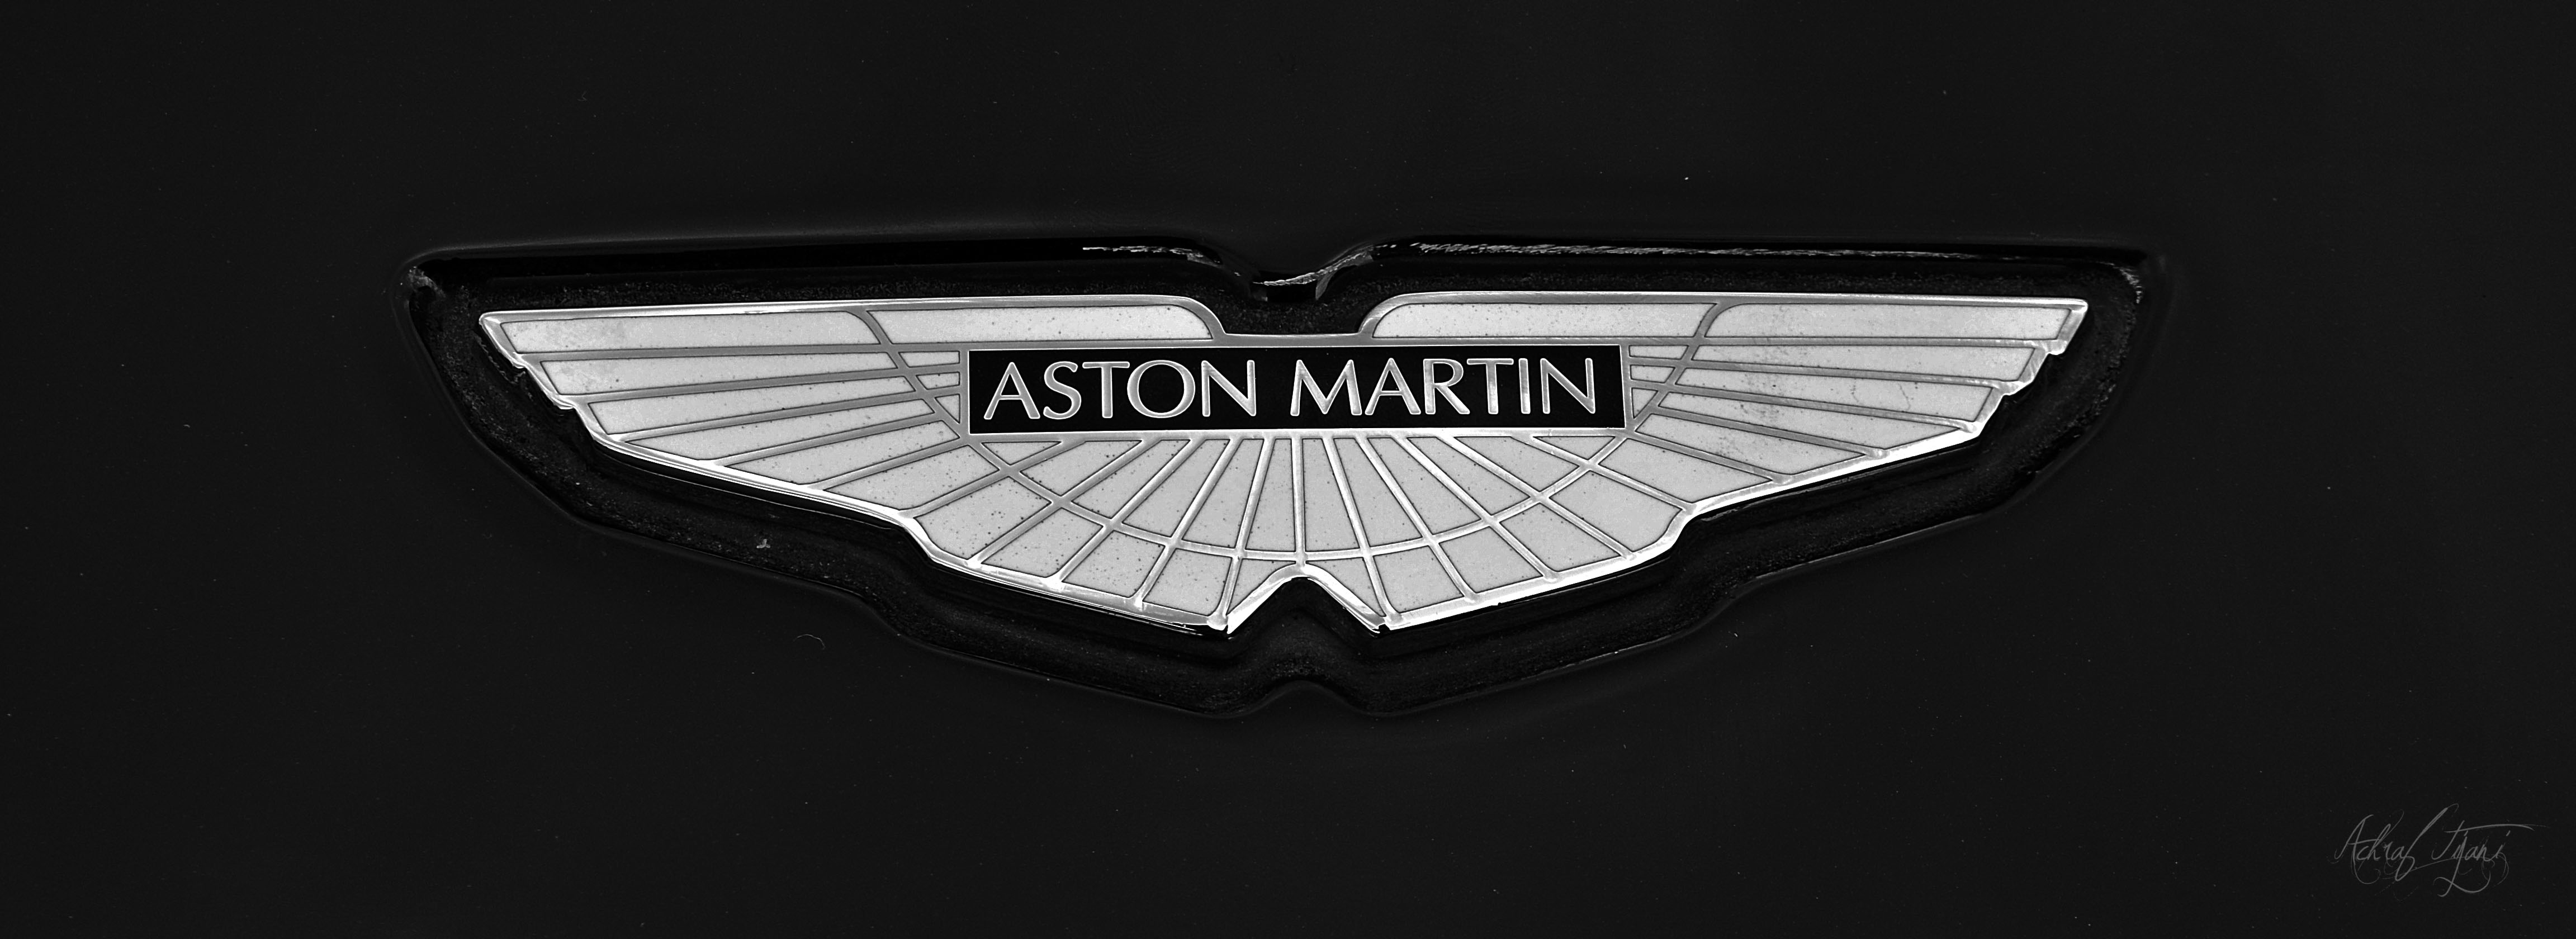 aston martin logo wallpapers Desktop Backgrounds for HD 4608x1680